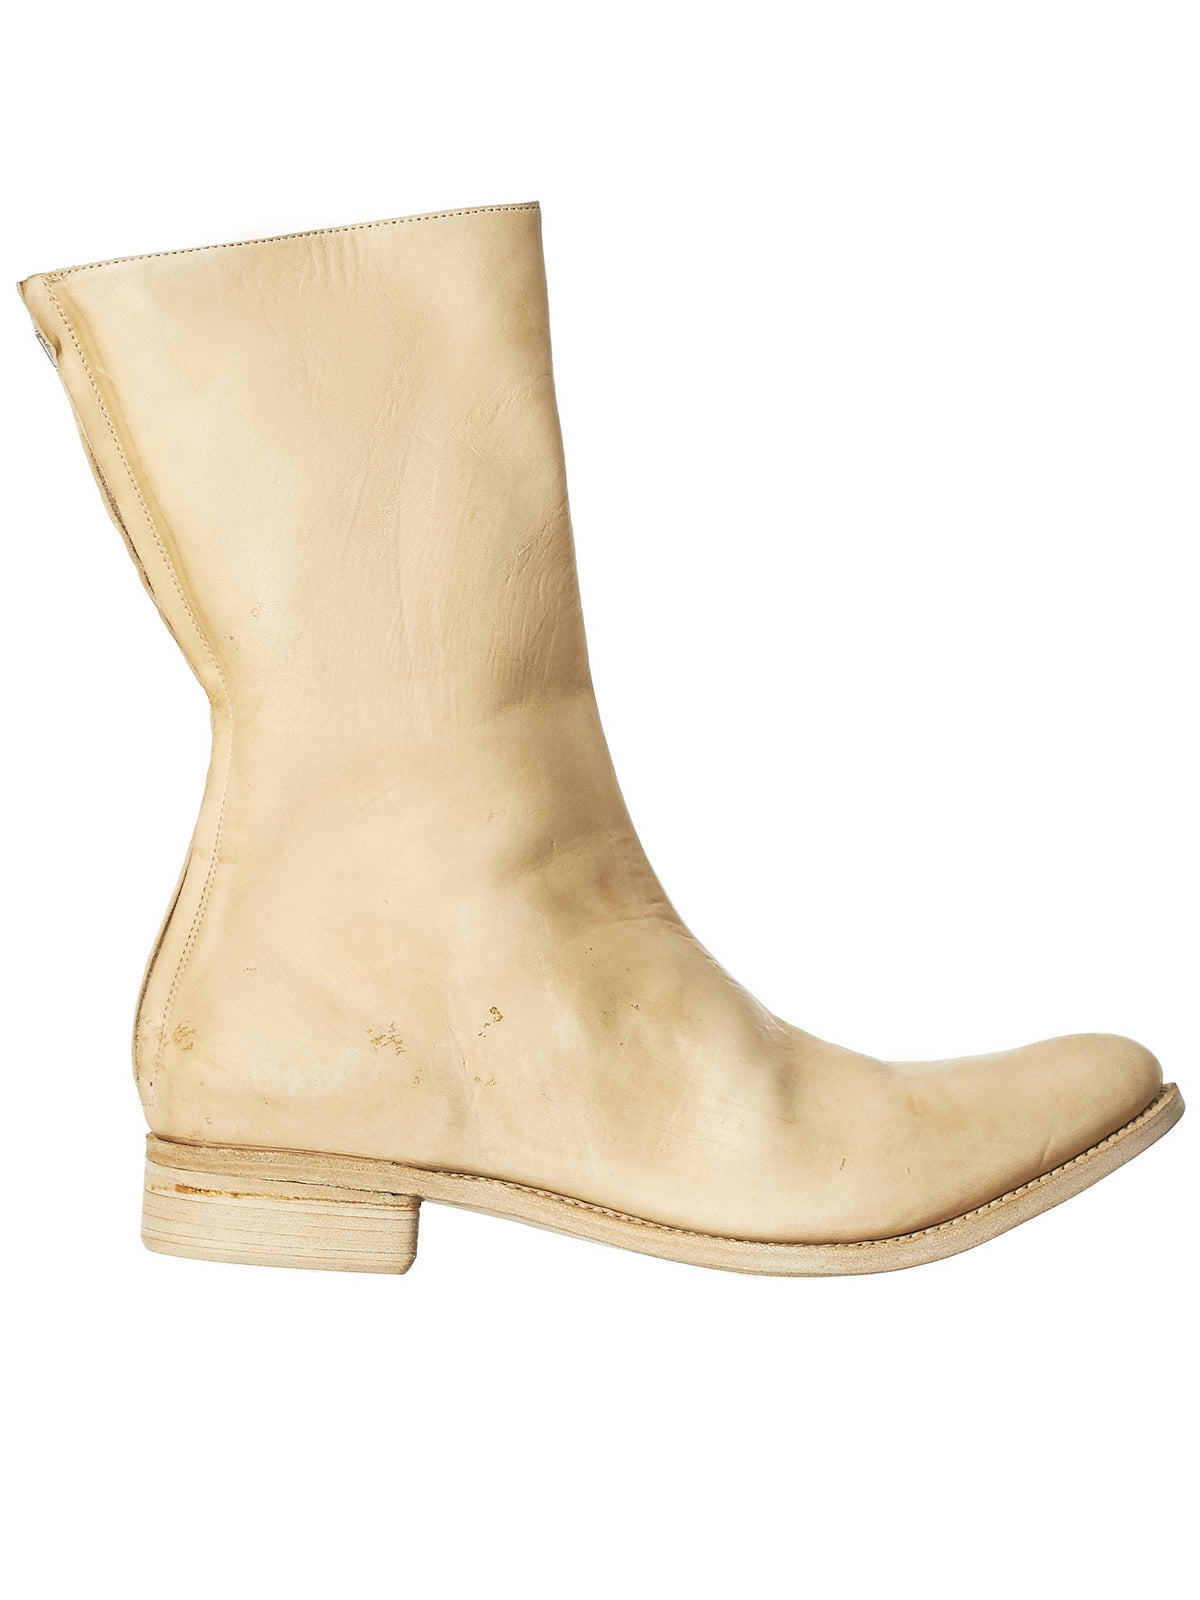 Heel Zip Boot (D14-HORSE-LIGHT-BEIGE)